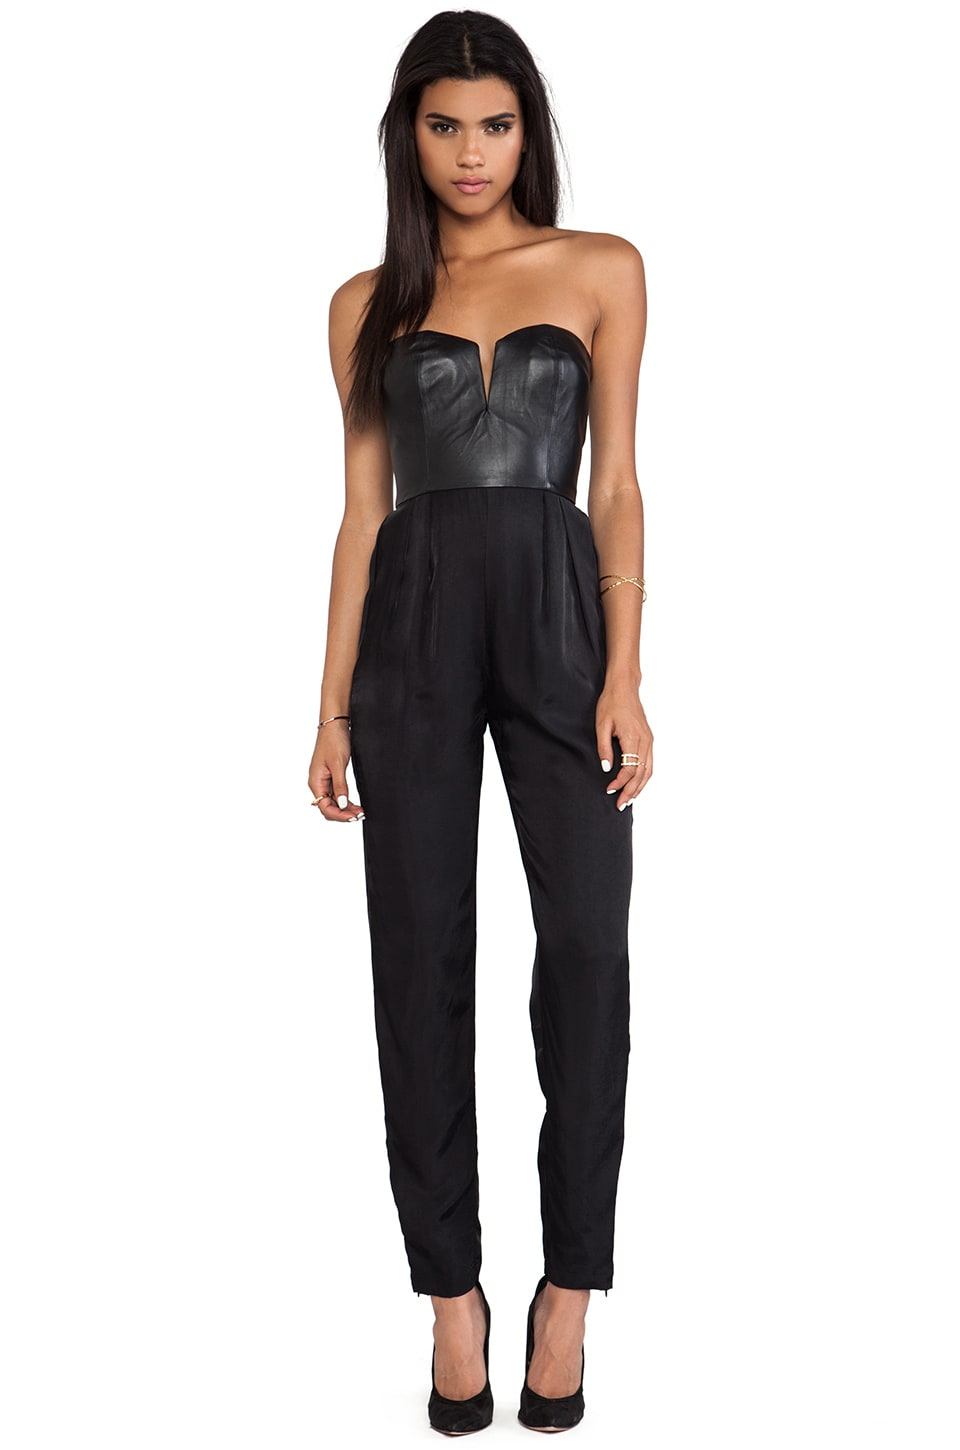 Shakuhachi Sculpted Leather Bustier Jumpsuit in Black